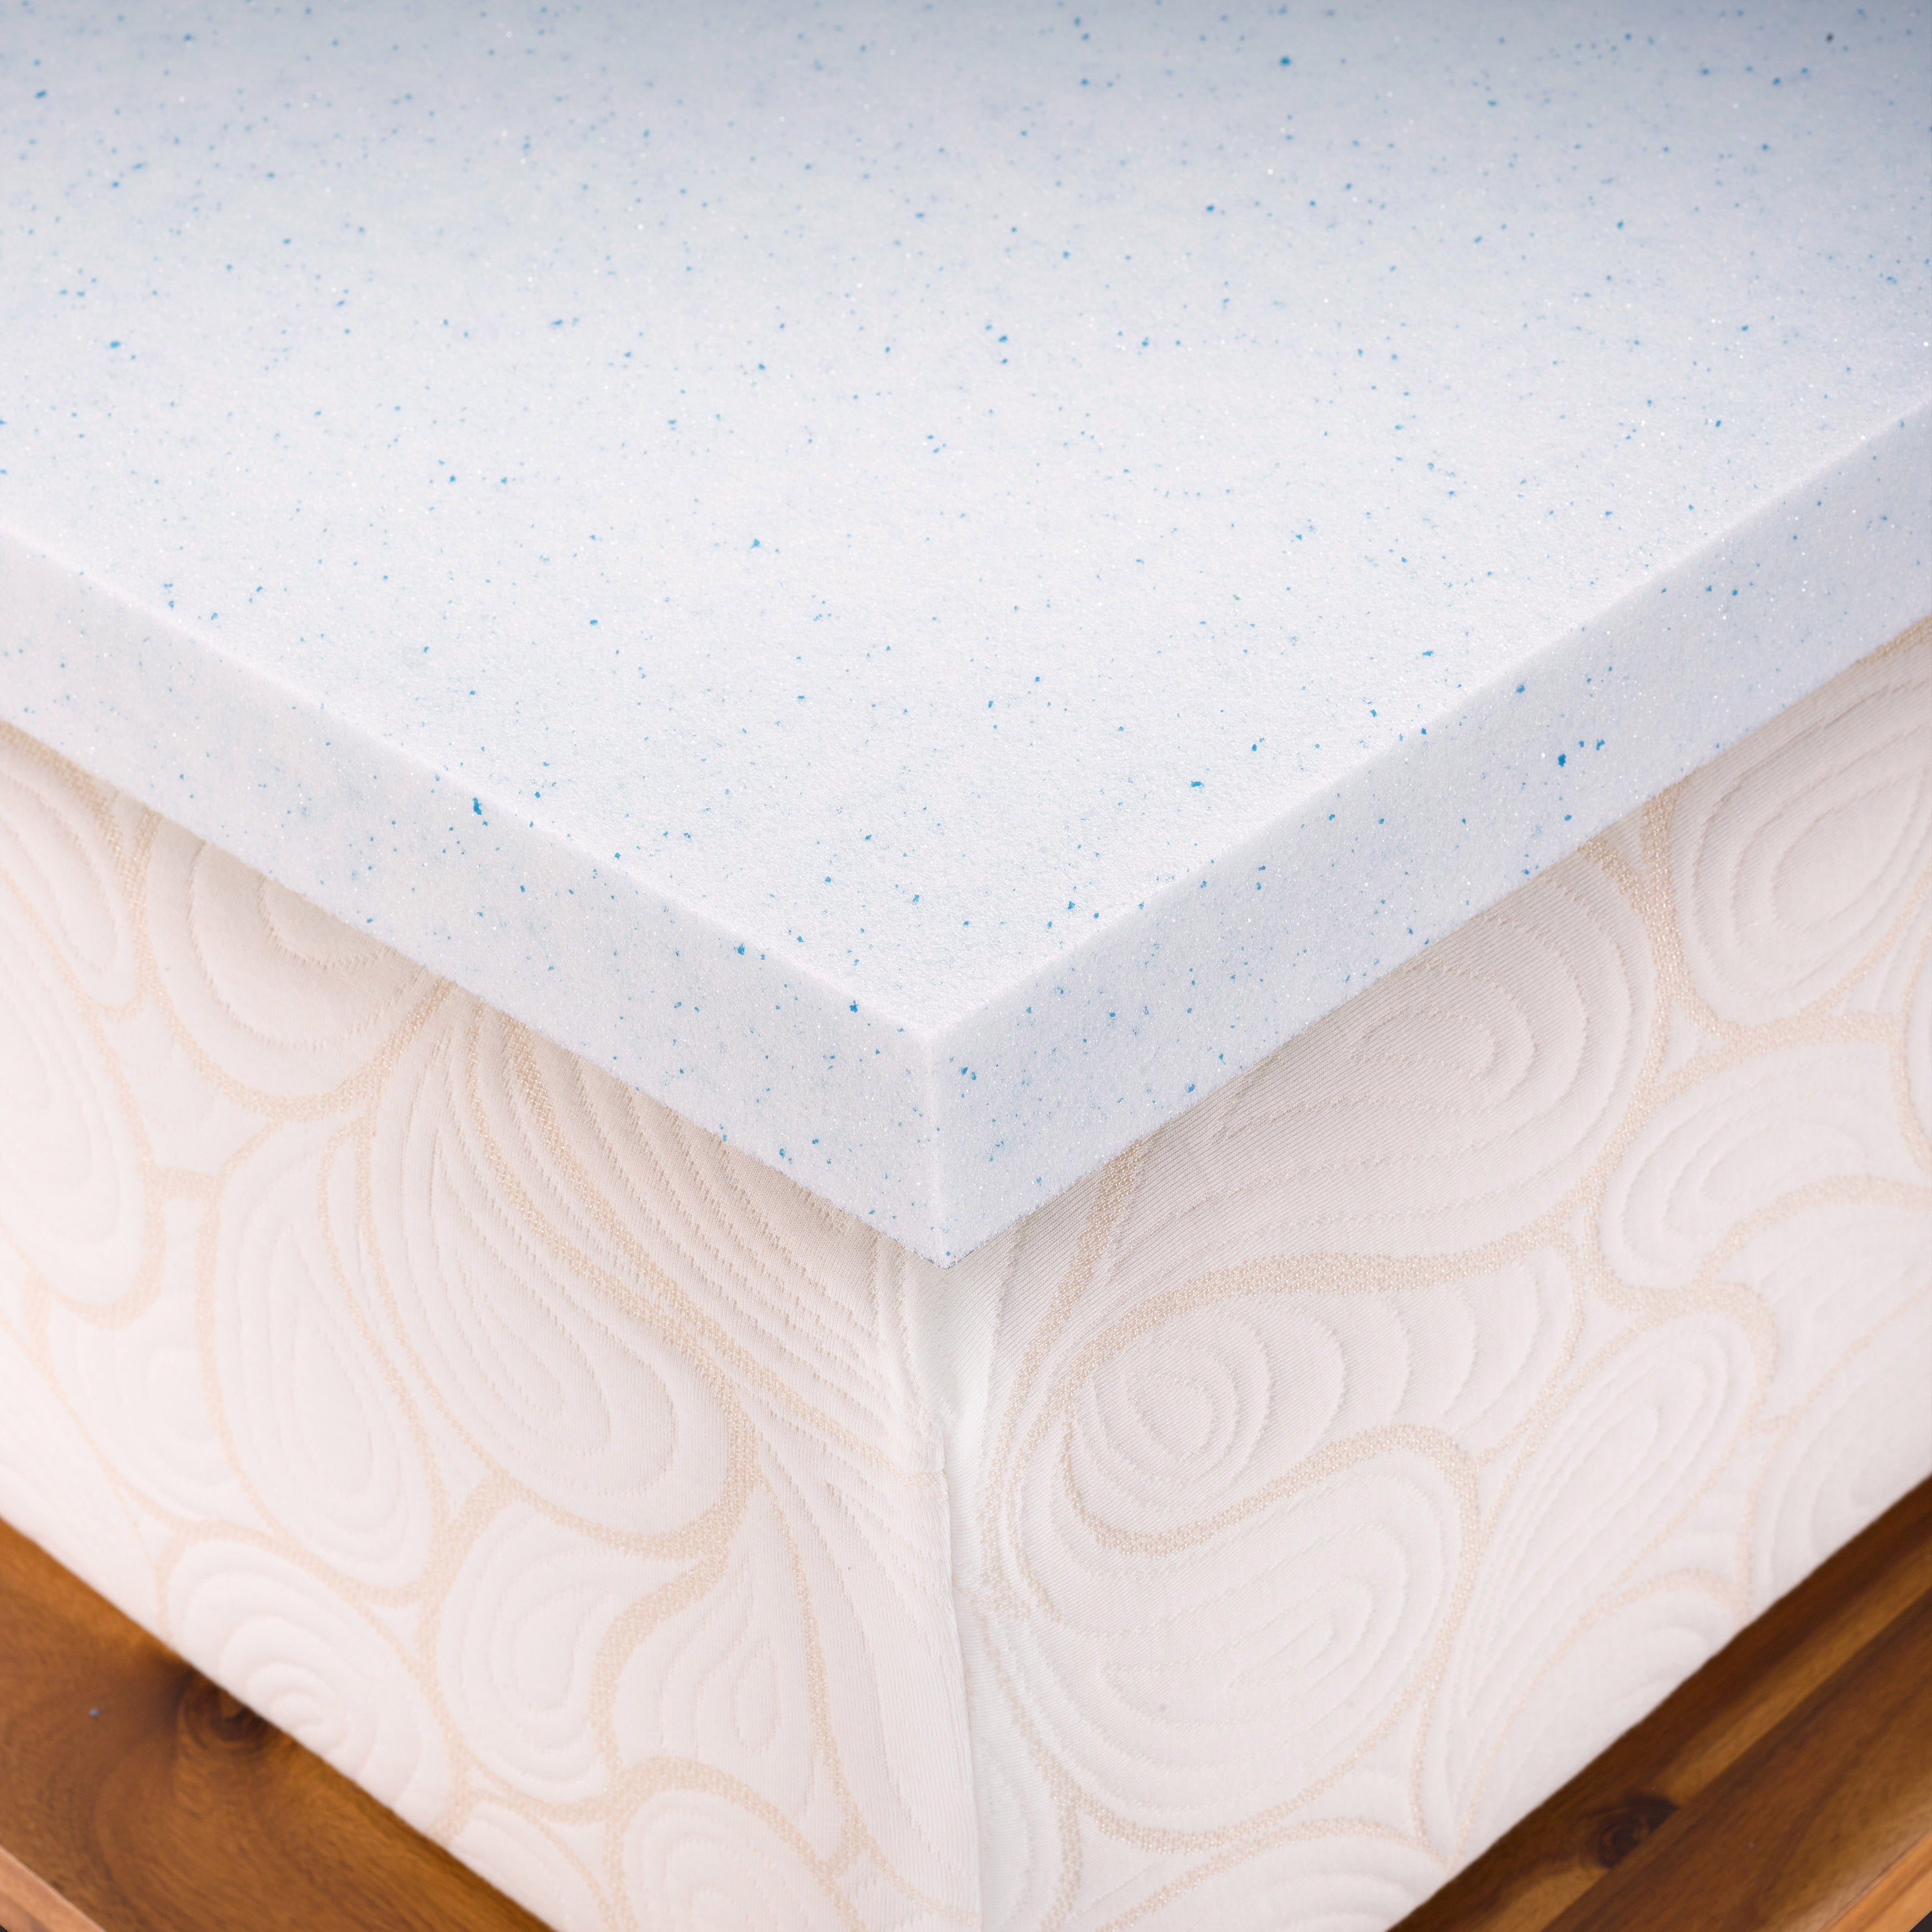 Authentic fort 2 inch Gel Memory Foam Mattress Topper with